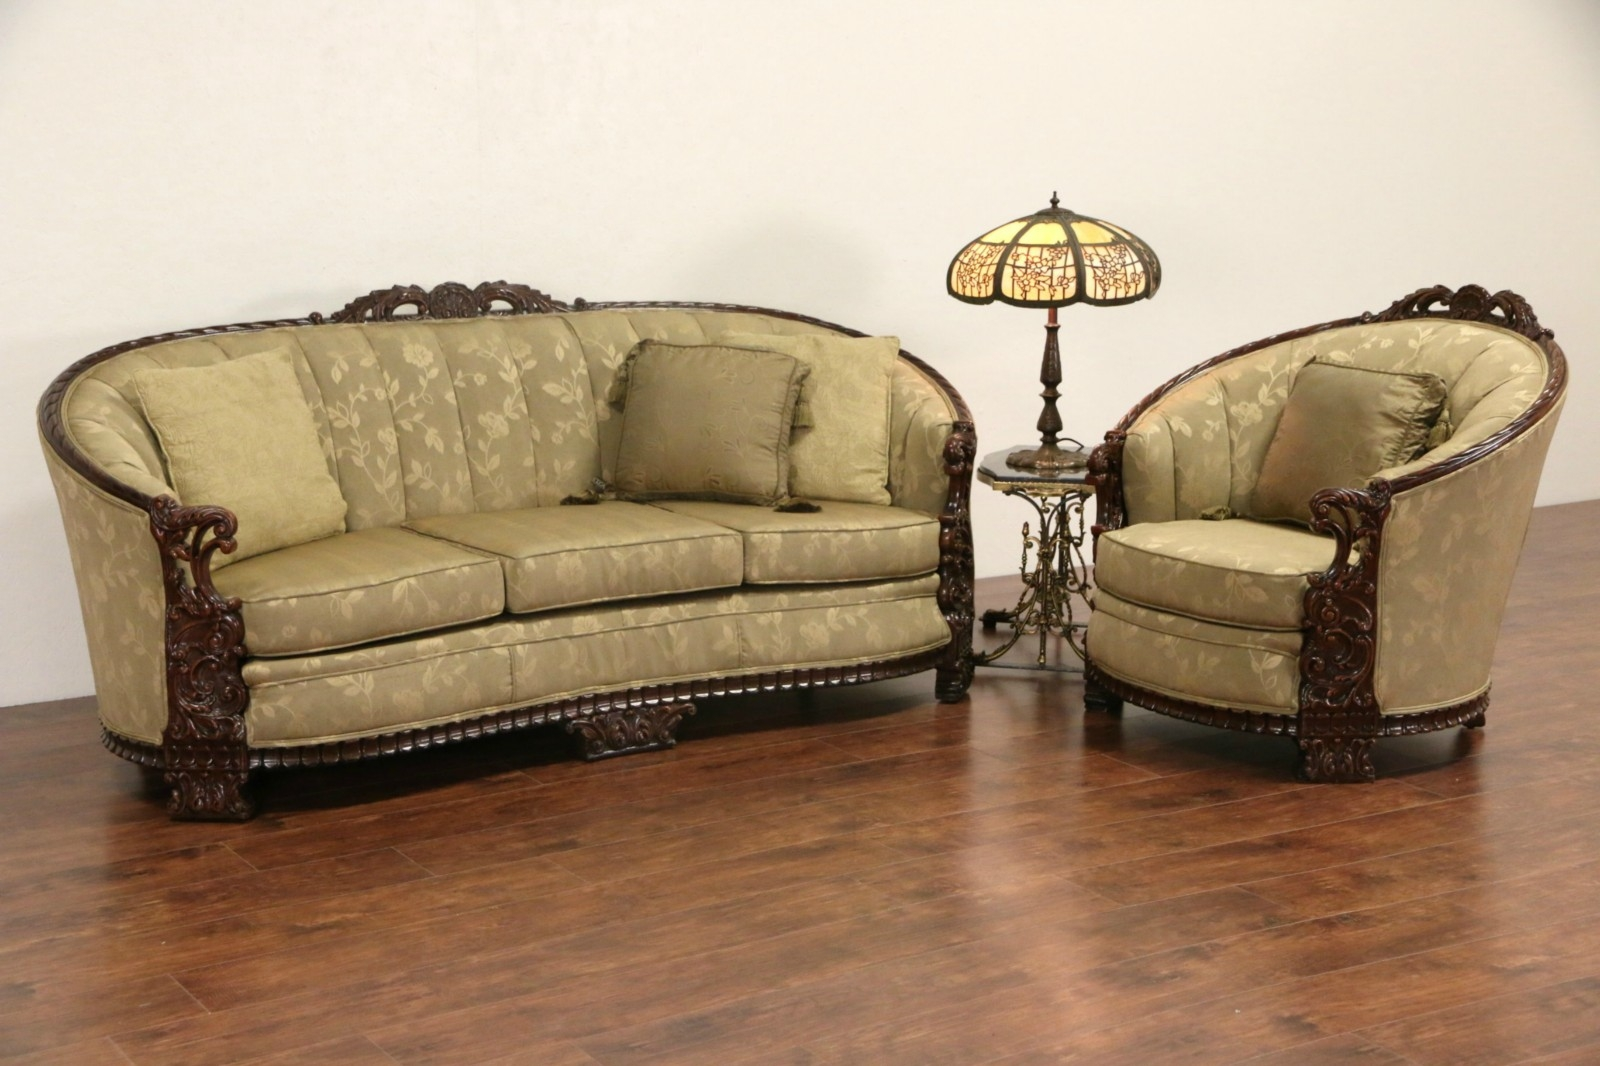 Sold Carved Sofa Club Chair Set 1930s Vintage New Inside 1930s Sofas (Image 11 of 15)